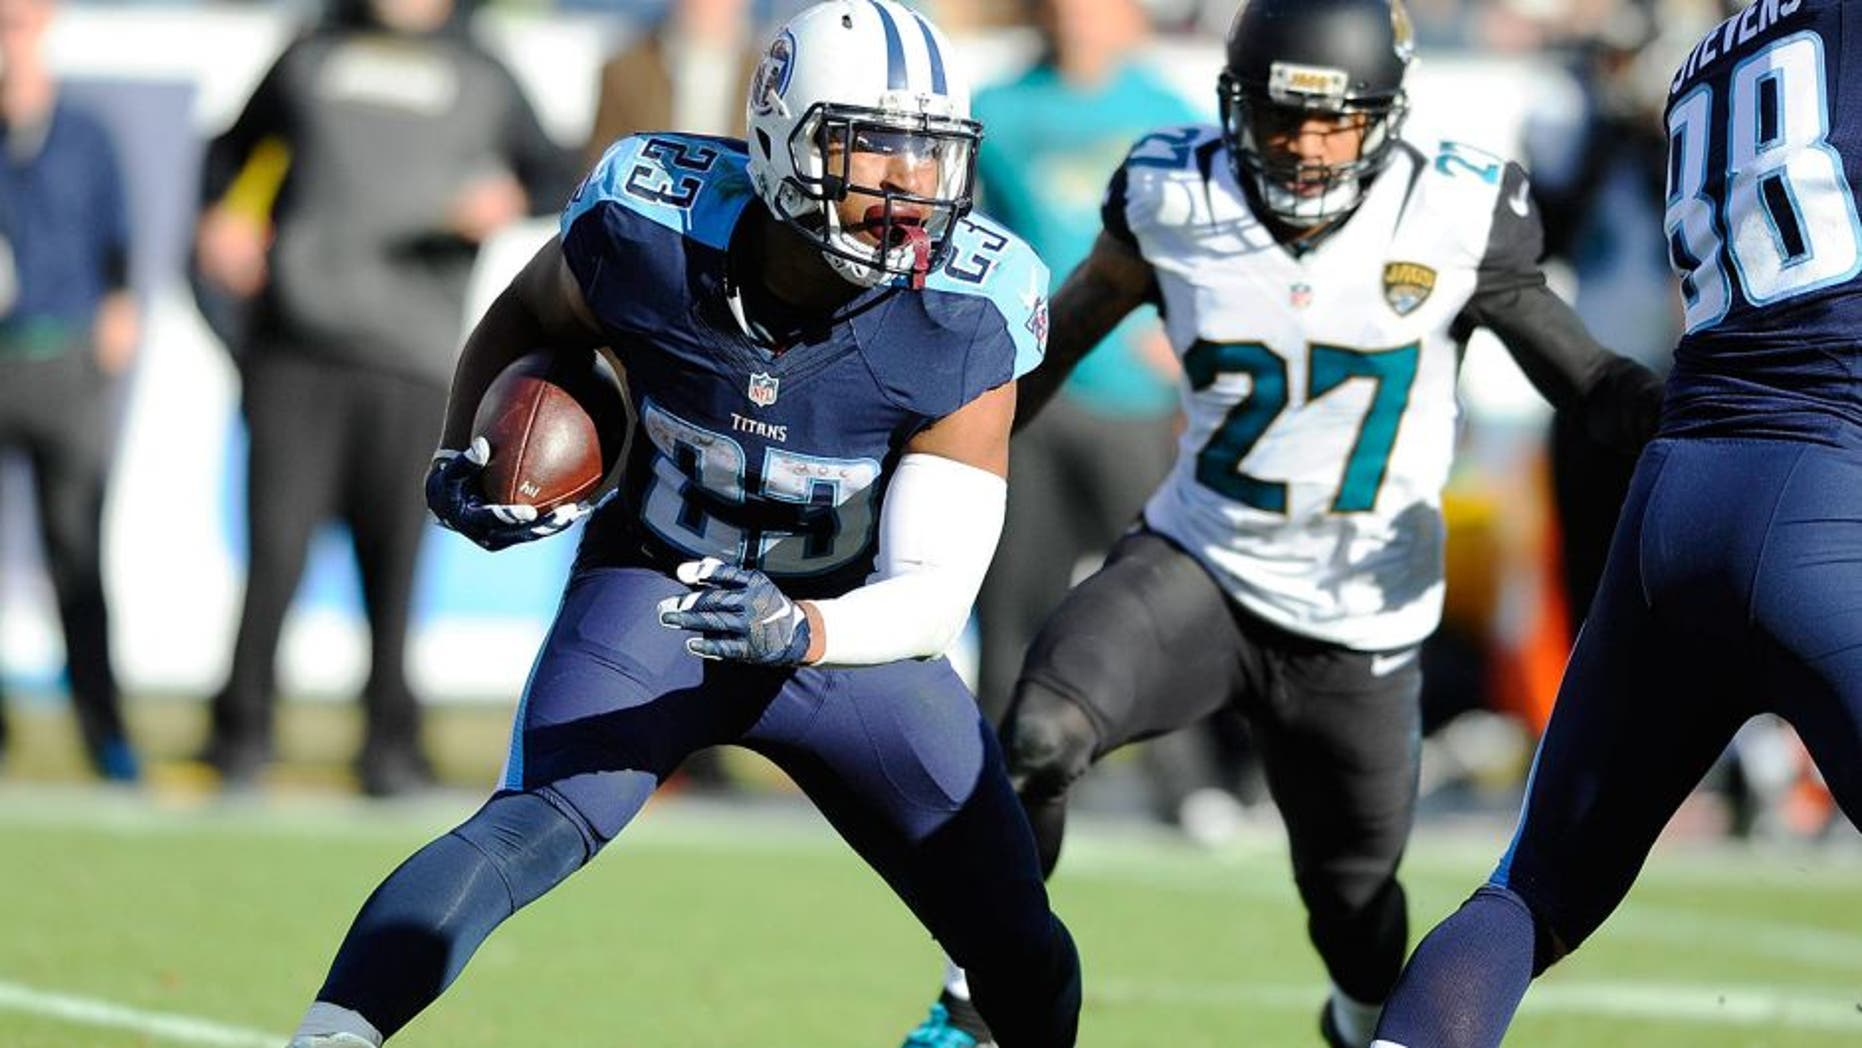 Dec 6, 2015; Nashville, TN, USA; Tennessee Titans running back David Cobb (23) is stopped behind the line during the second half against the Jacksonville Jaguars at Nissan Stadium. Mandatory Credit: Christopher Hanewinckel-USA TODAY Sports